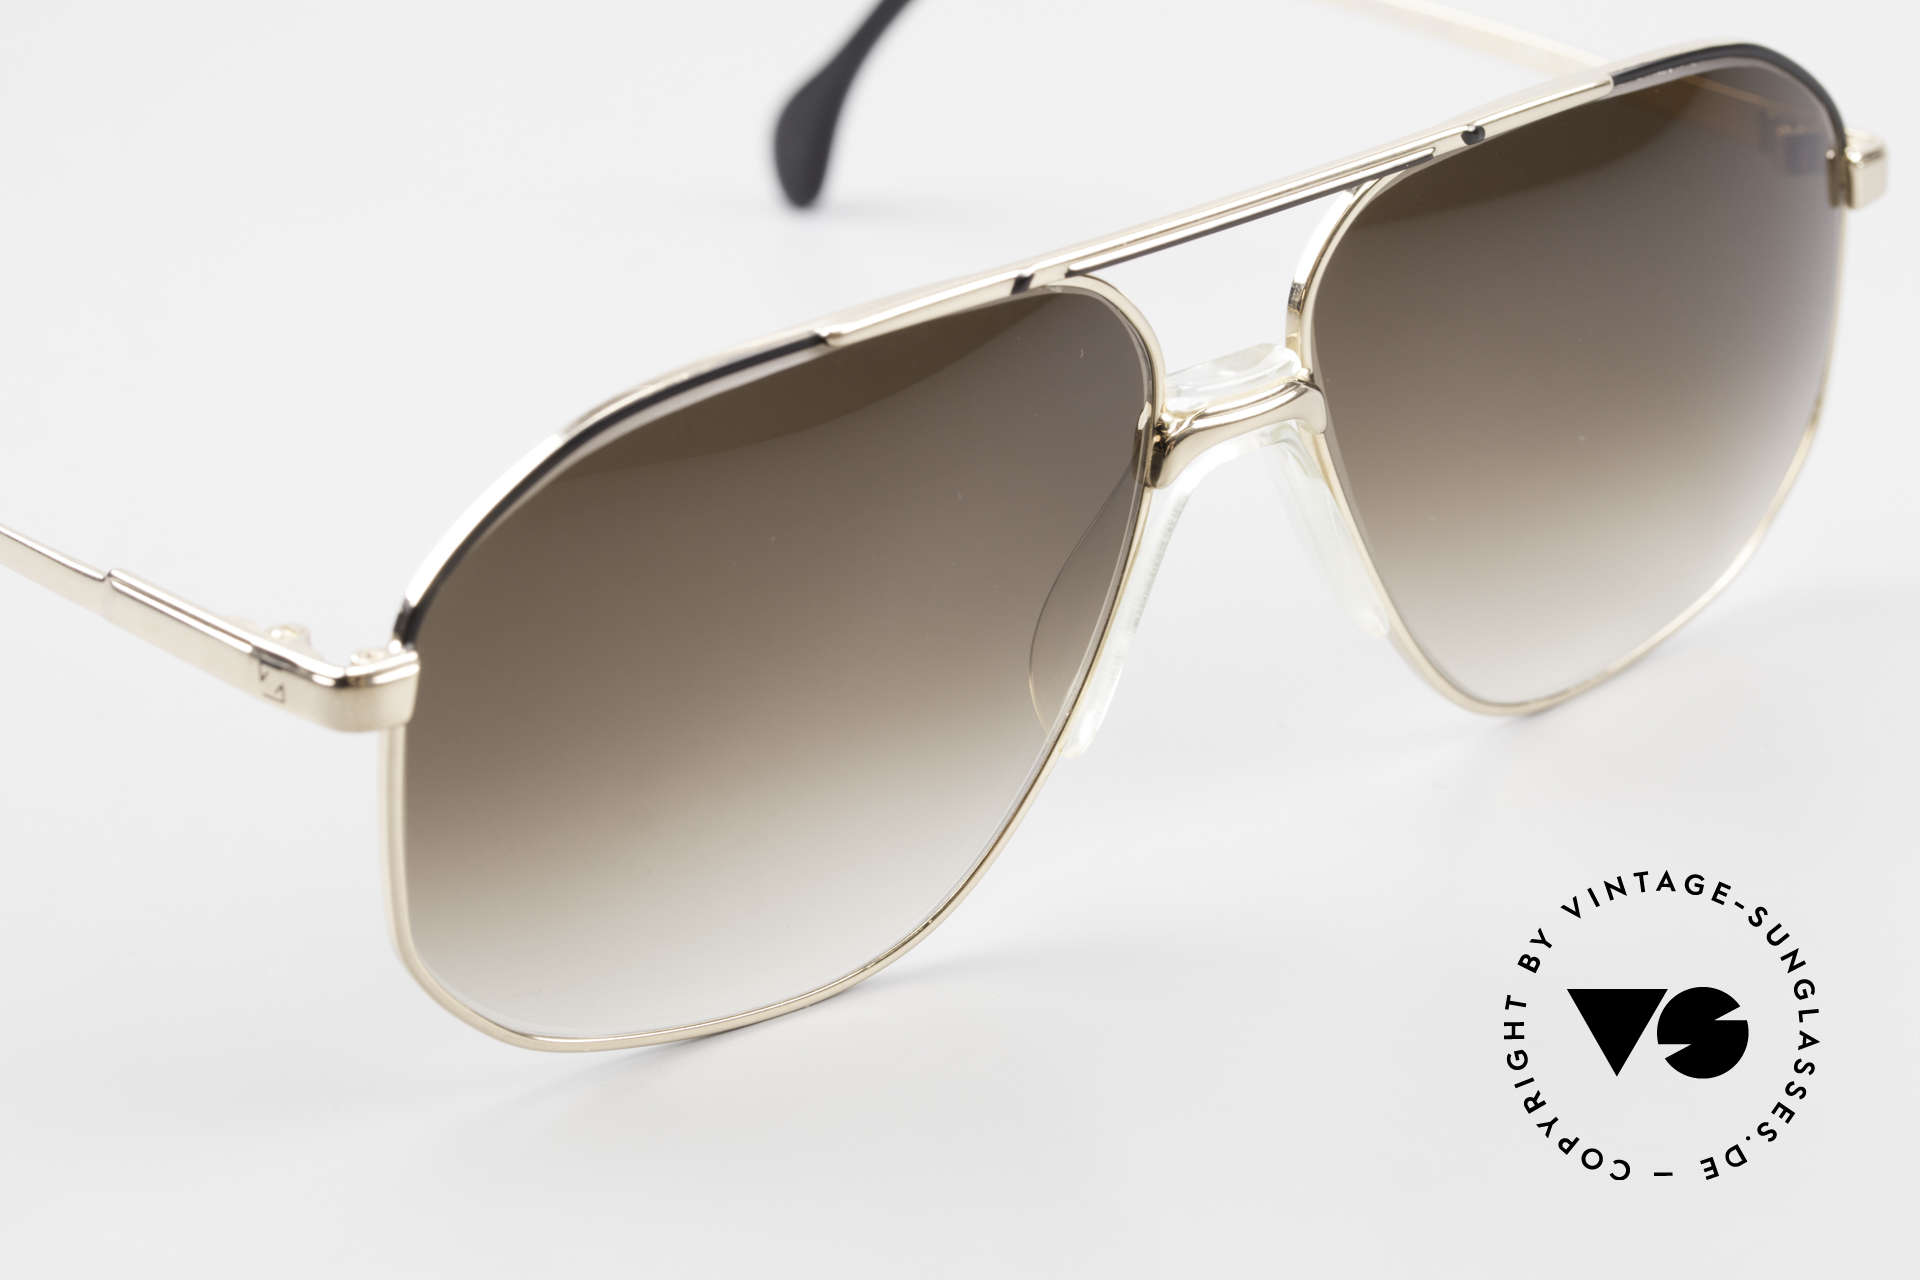 Zeiss 5906 Old 80's Quality Aviator Shades, never worn (like all our vintage ZEISS sunglasses), Made for Men